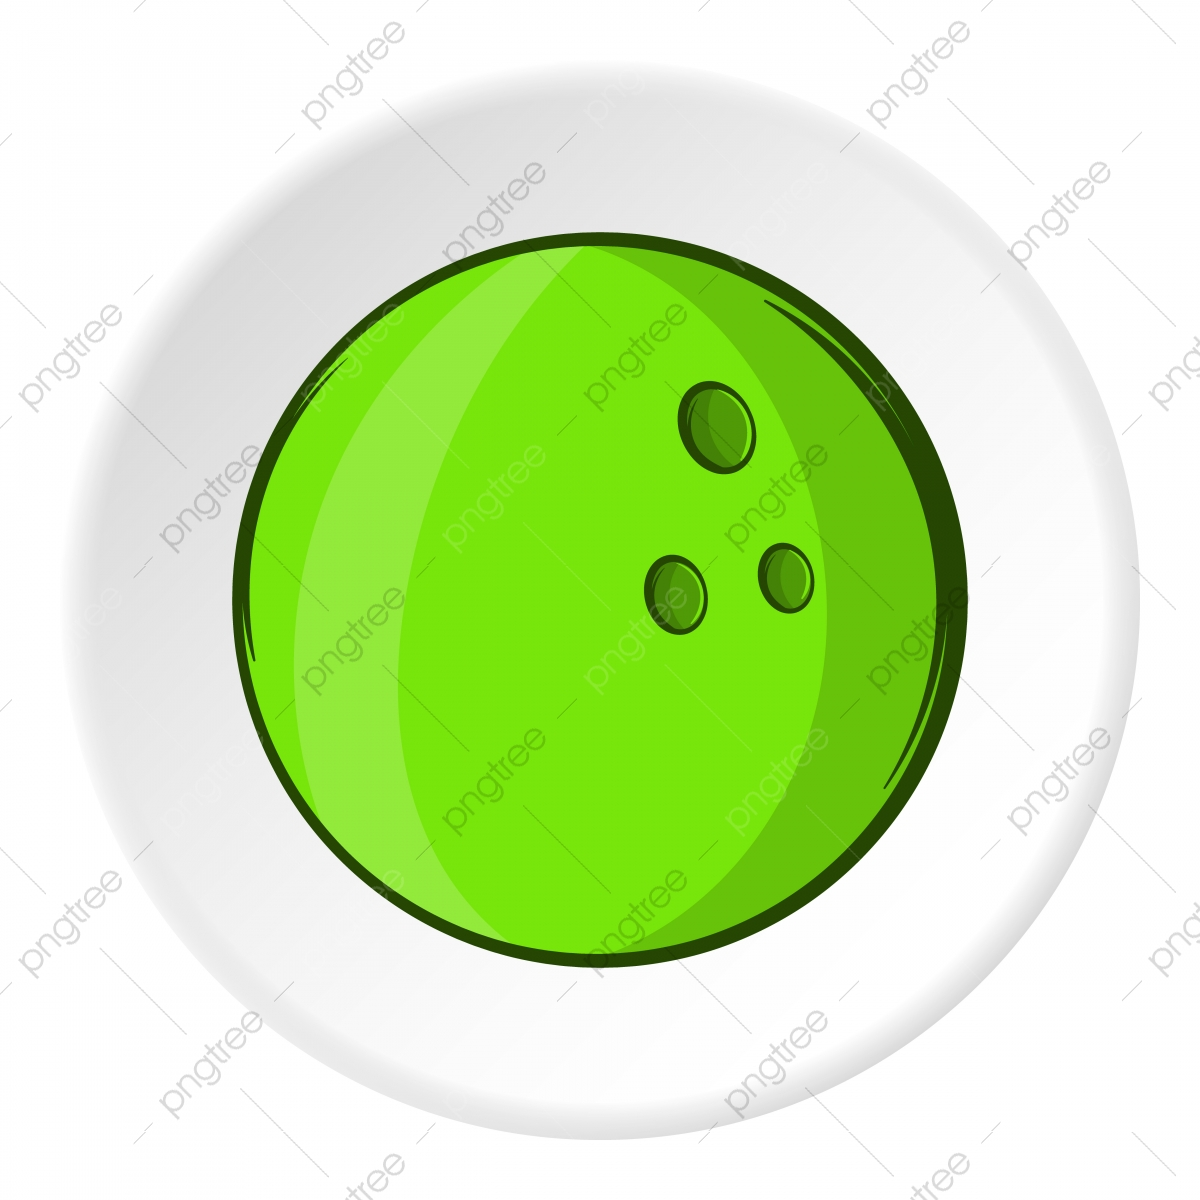 Bowling Ball Png Images Vector And Psd Files Free Download On Pngtree Choose from 700+ cartoon crown graphic resources and download in the form of png, eps, ai or psd. https pngtree com freepng bowling ball icon cartoon style 5166436 html